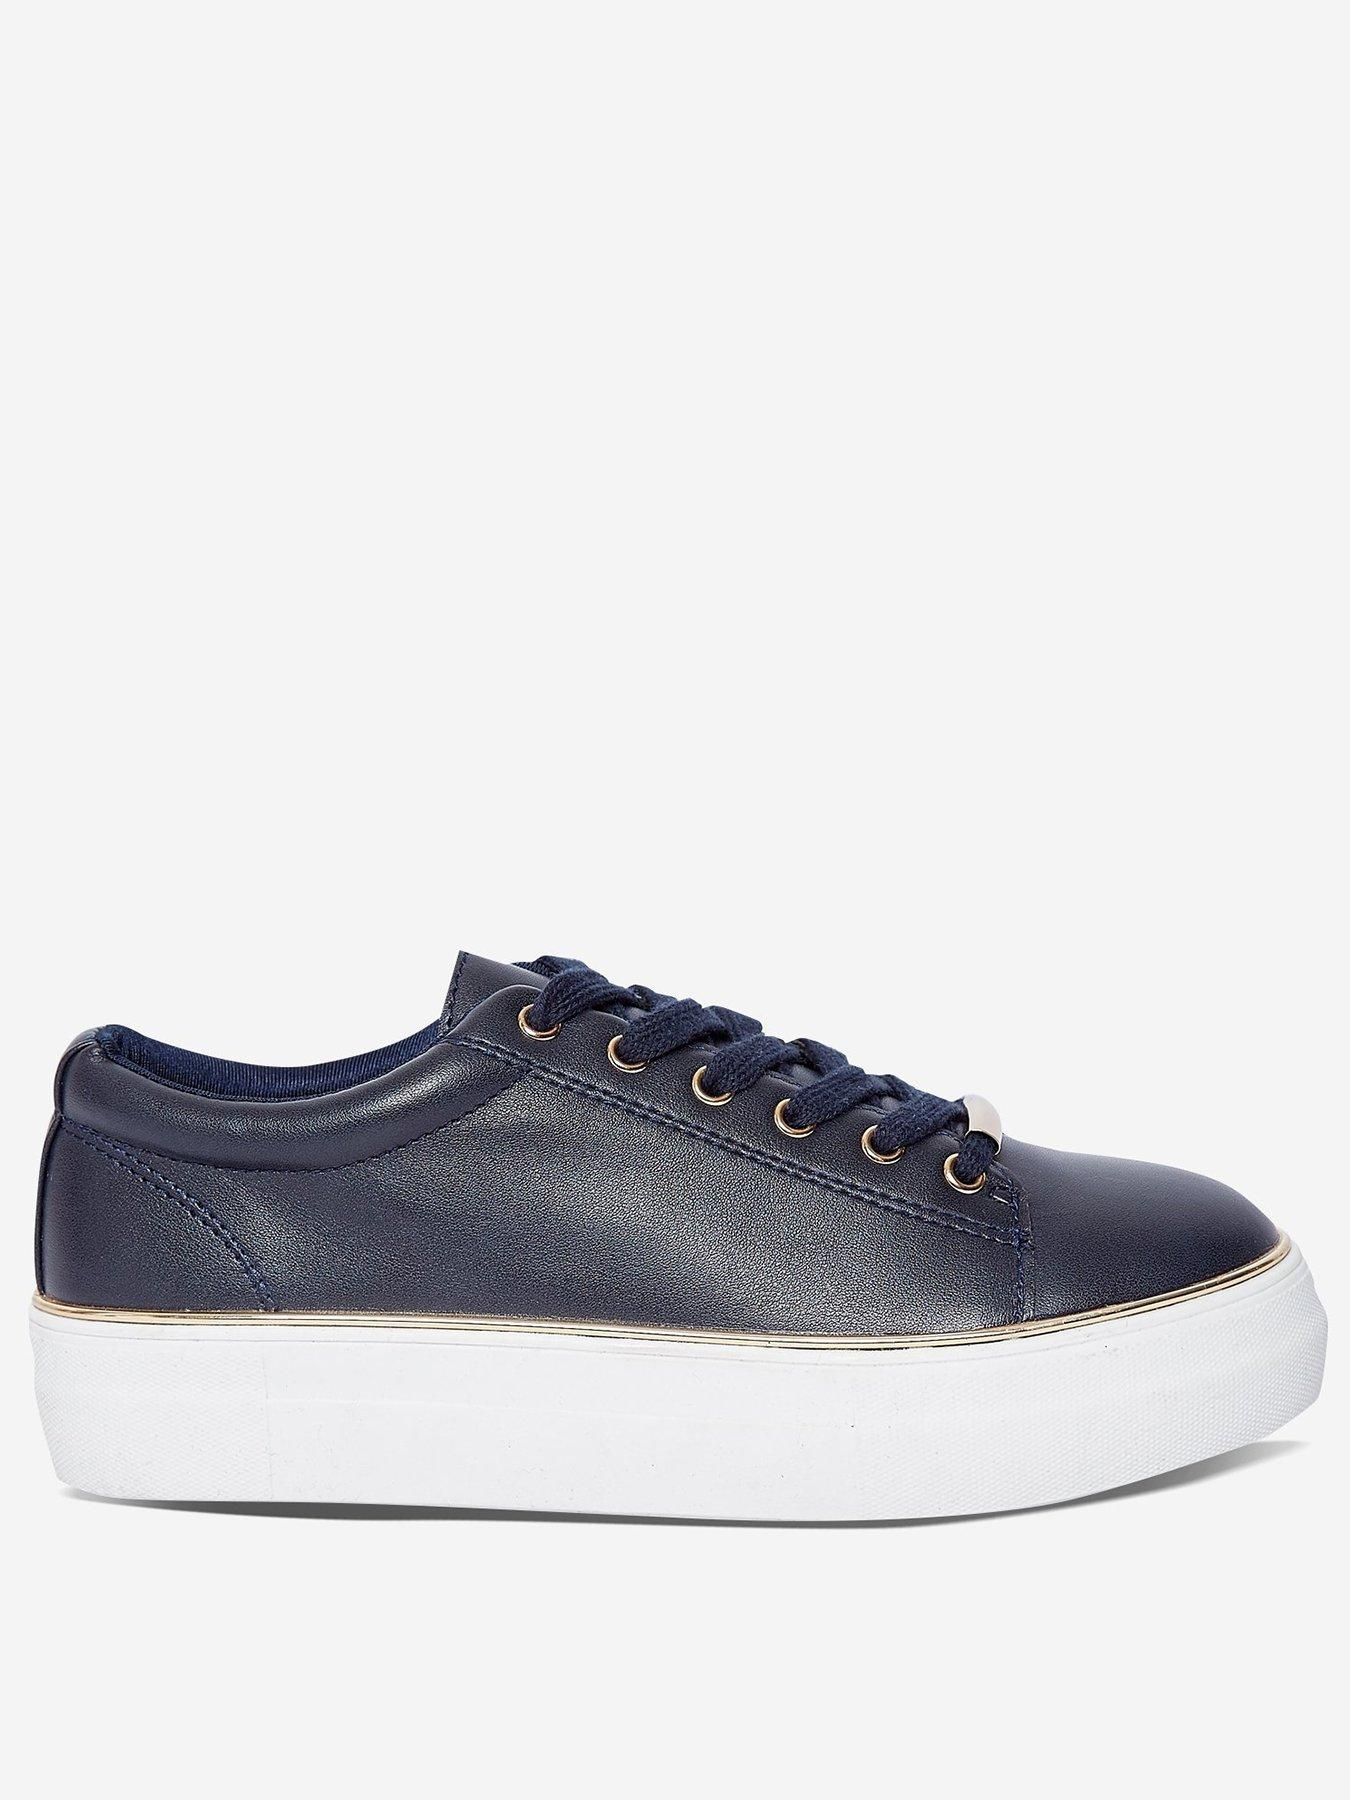 Cheap Shoes   Clearance Sale